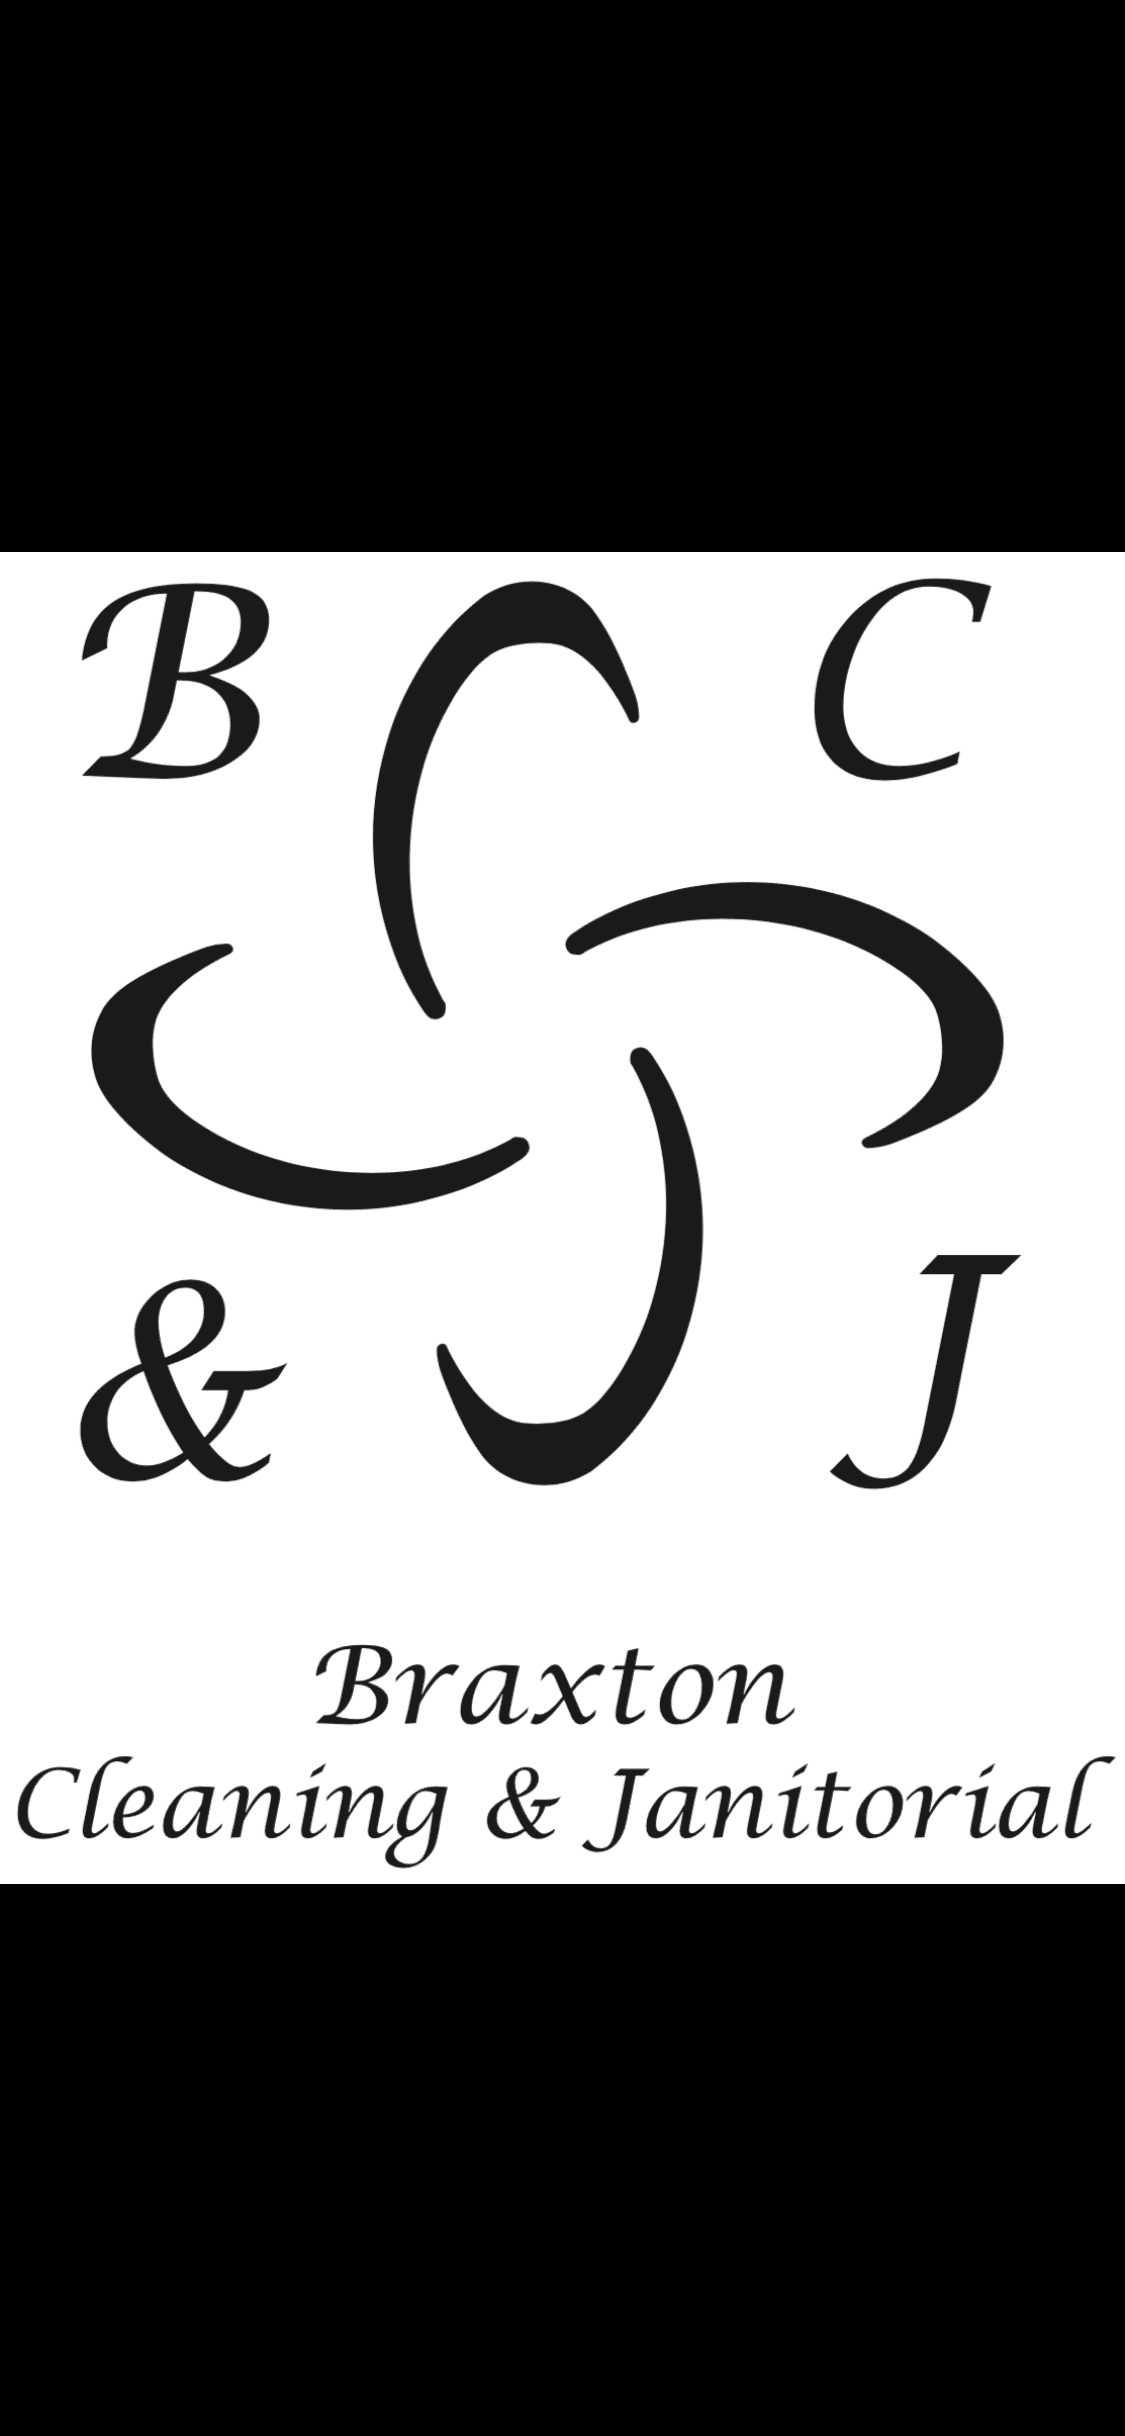 Braxton Cleaning & Janitorial image 0